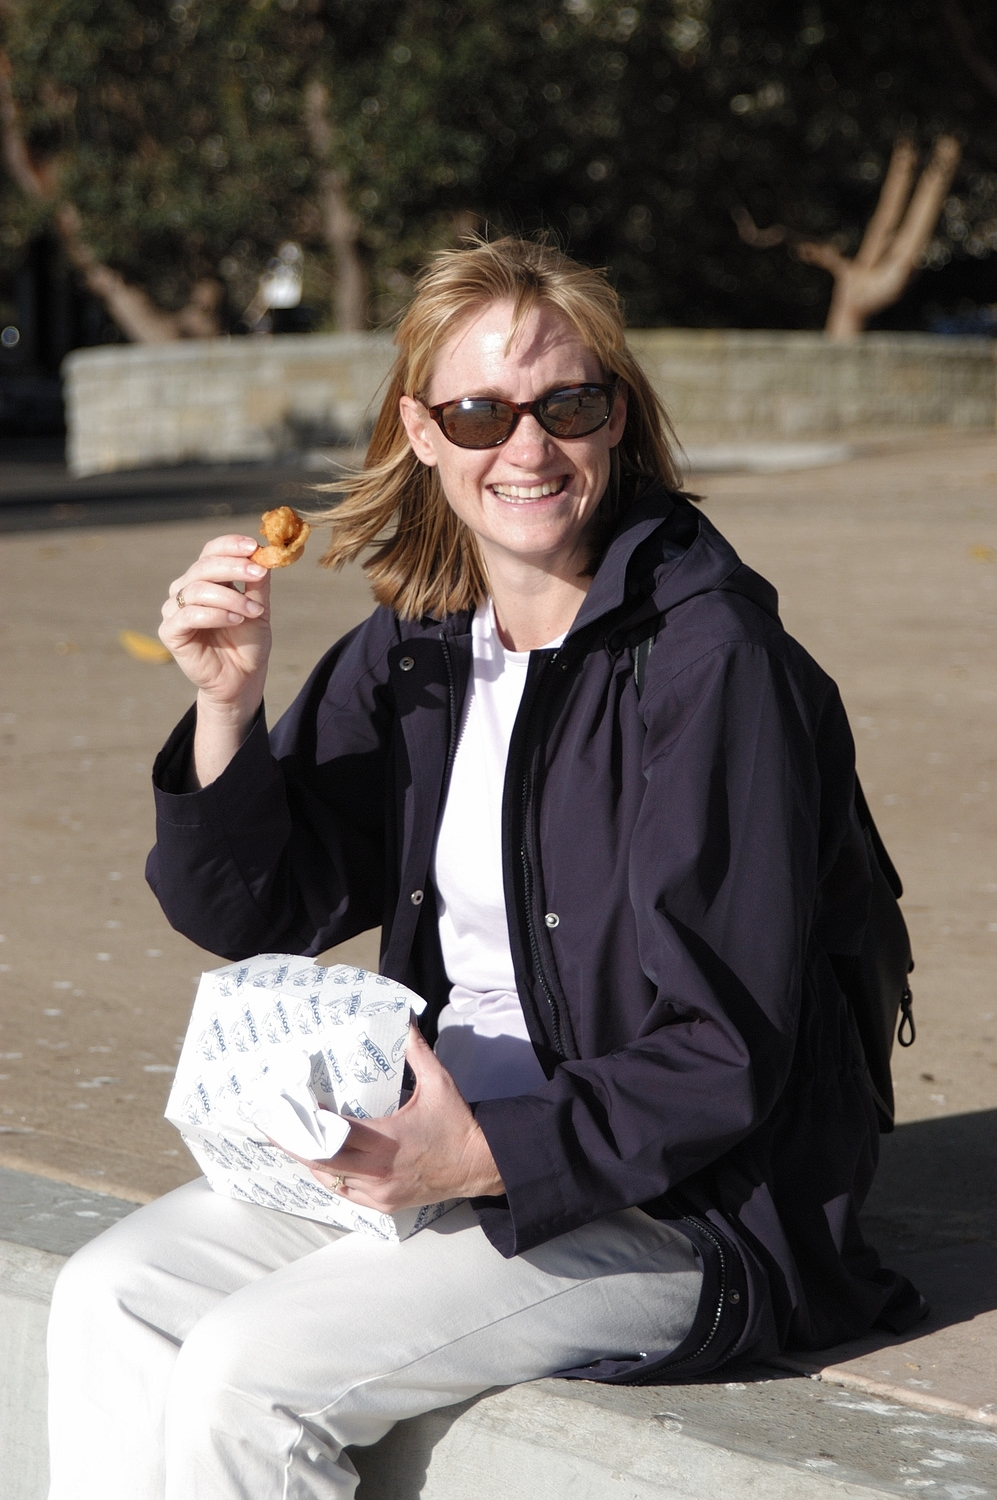 Here I am enjoying some delicious fried shrimp (prawns) takeaway from Doyle's on the sea wall at Watson's Bay